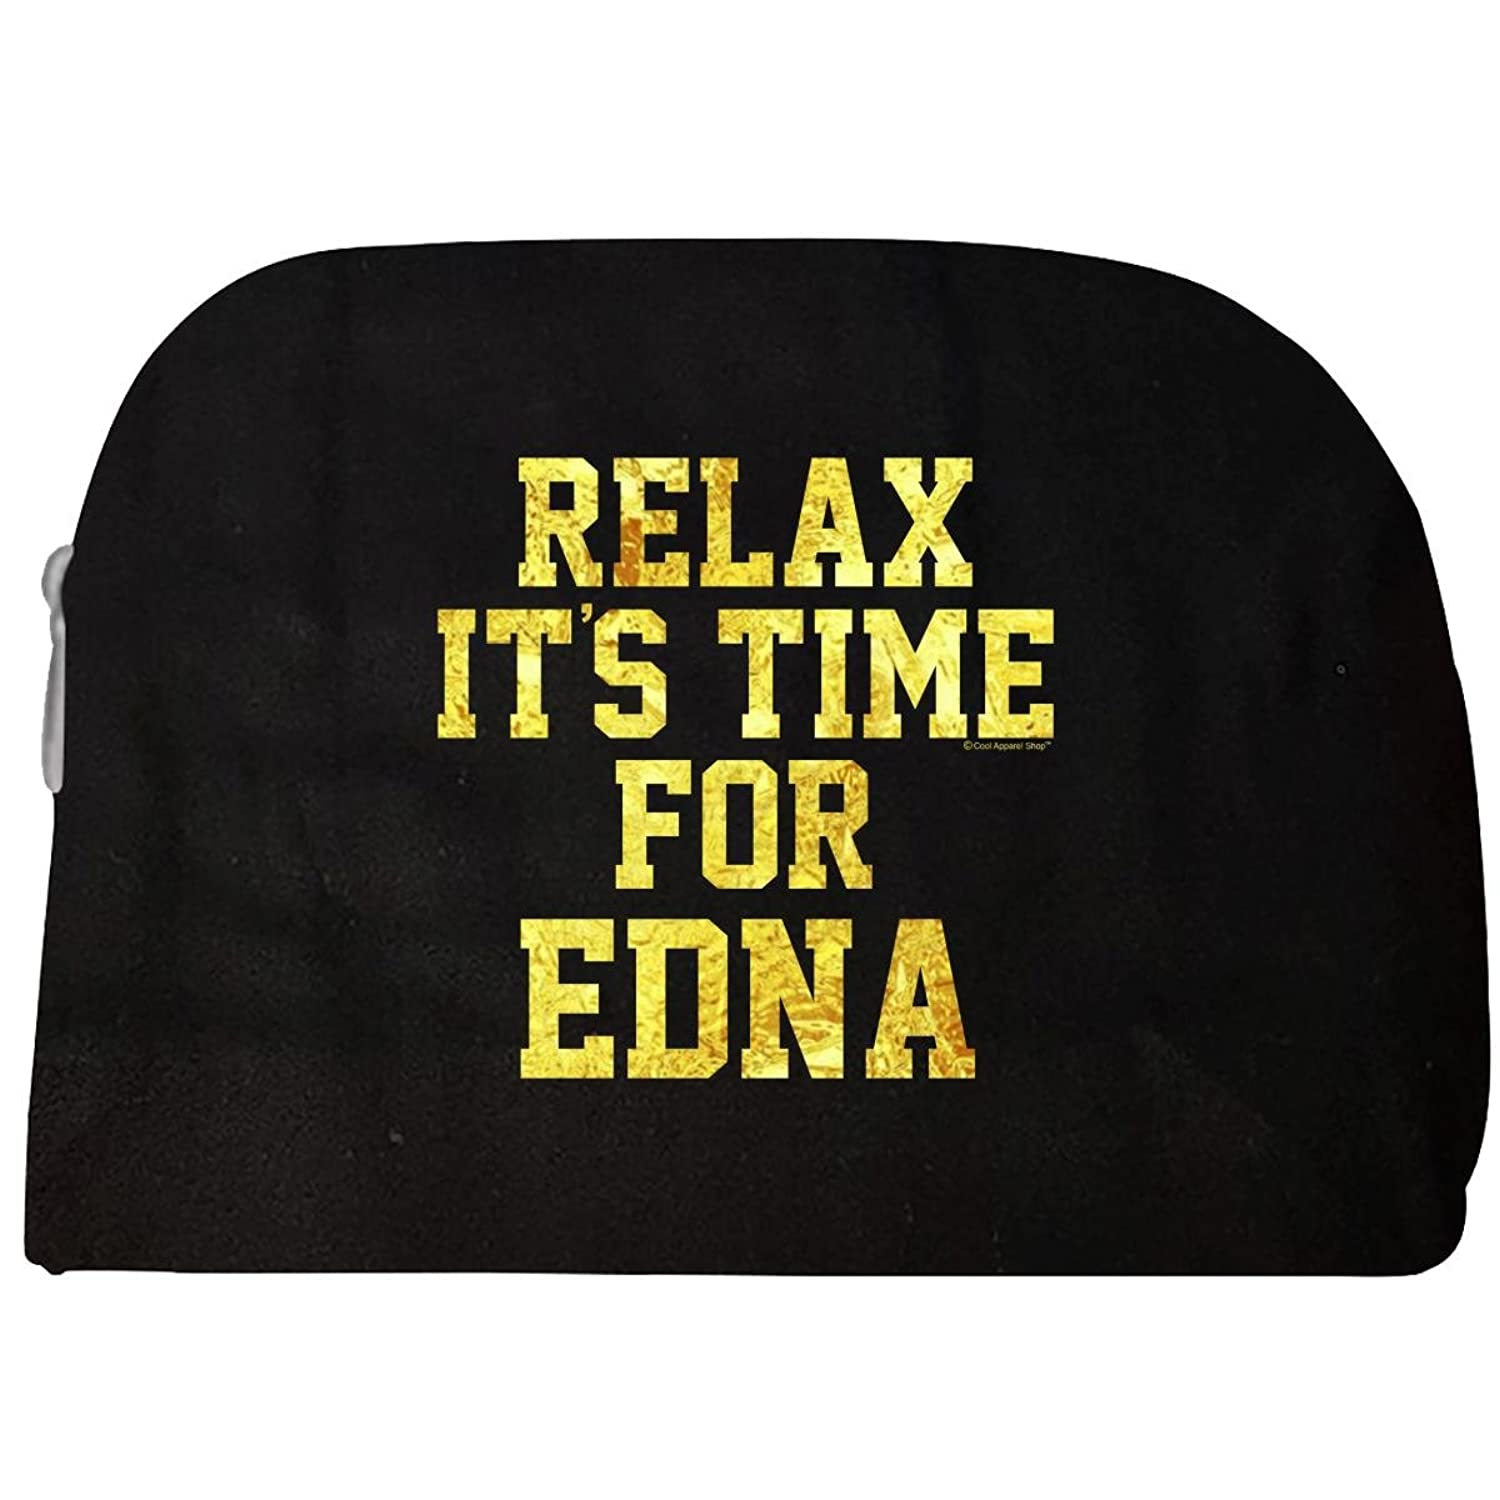 Relax Its Time For Edna. Fun Gift Idea - Cosmetic Case